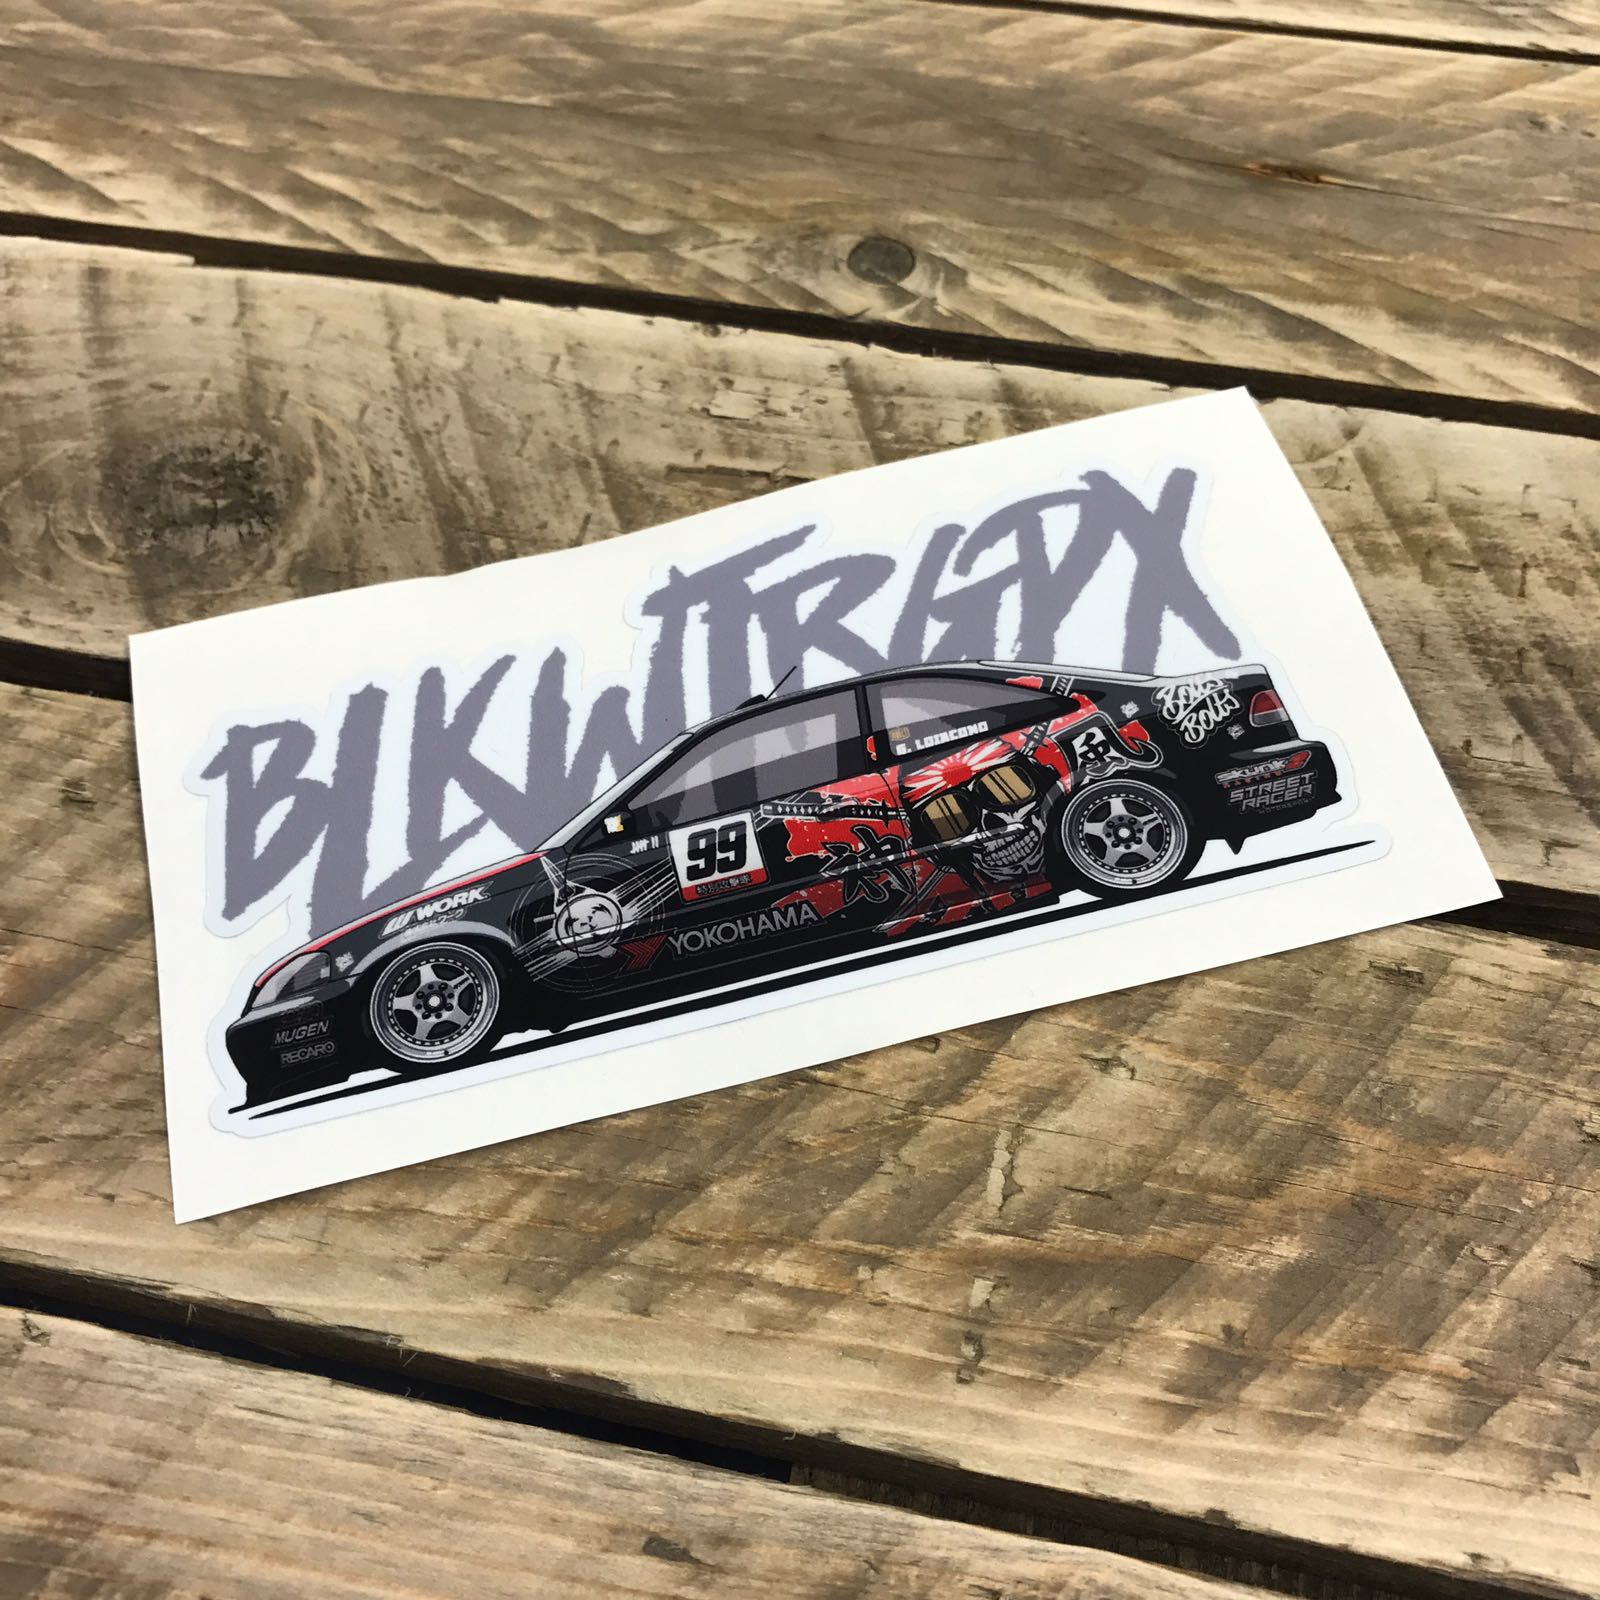 BLKWTRGPX Black Civic Sticker